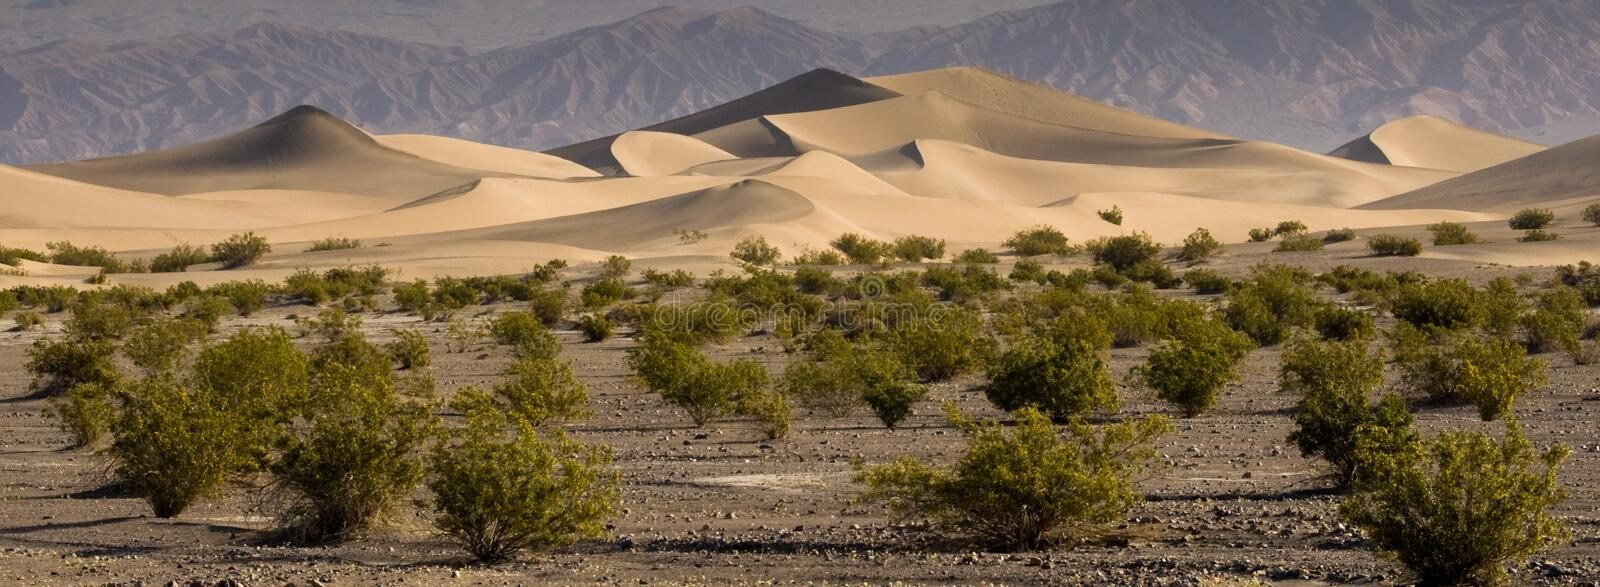 Download Sand Dunes Royalty Free Stock Photo - Image: 13834445